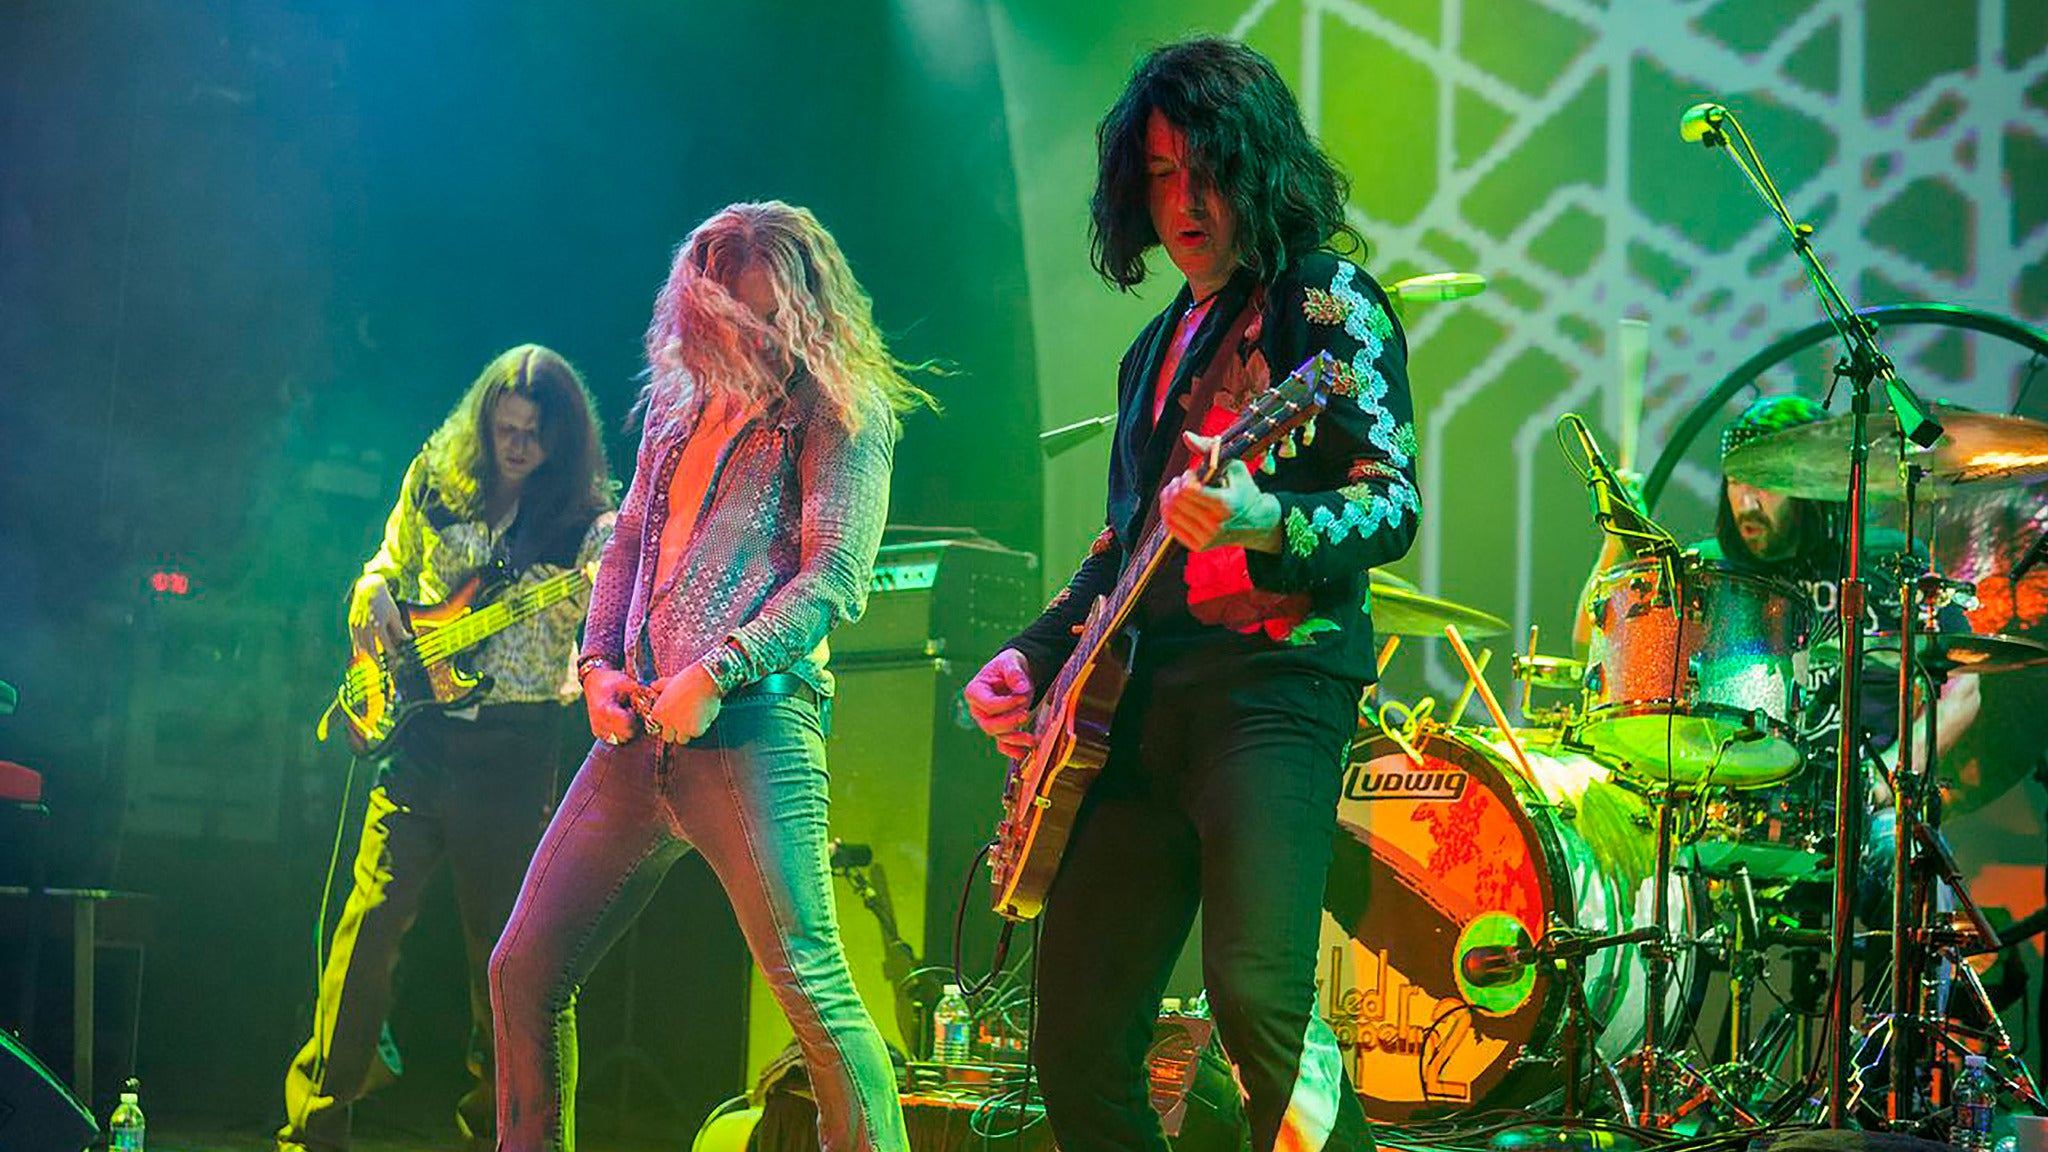 Led Zeppelin 2 plays lll: A 50th Anniversary Celebration